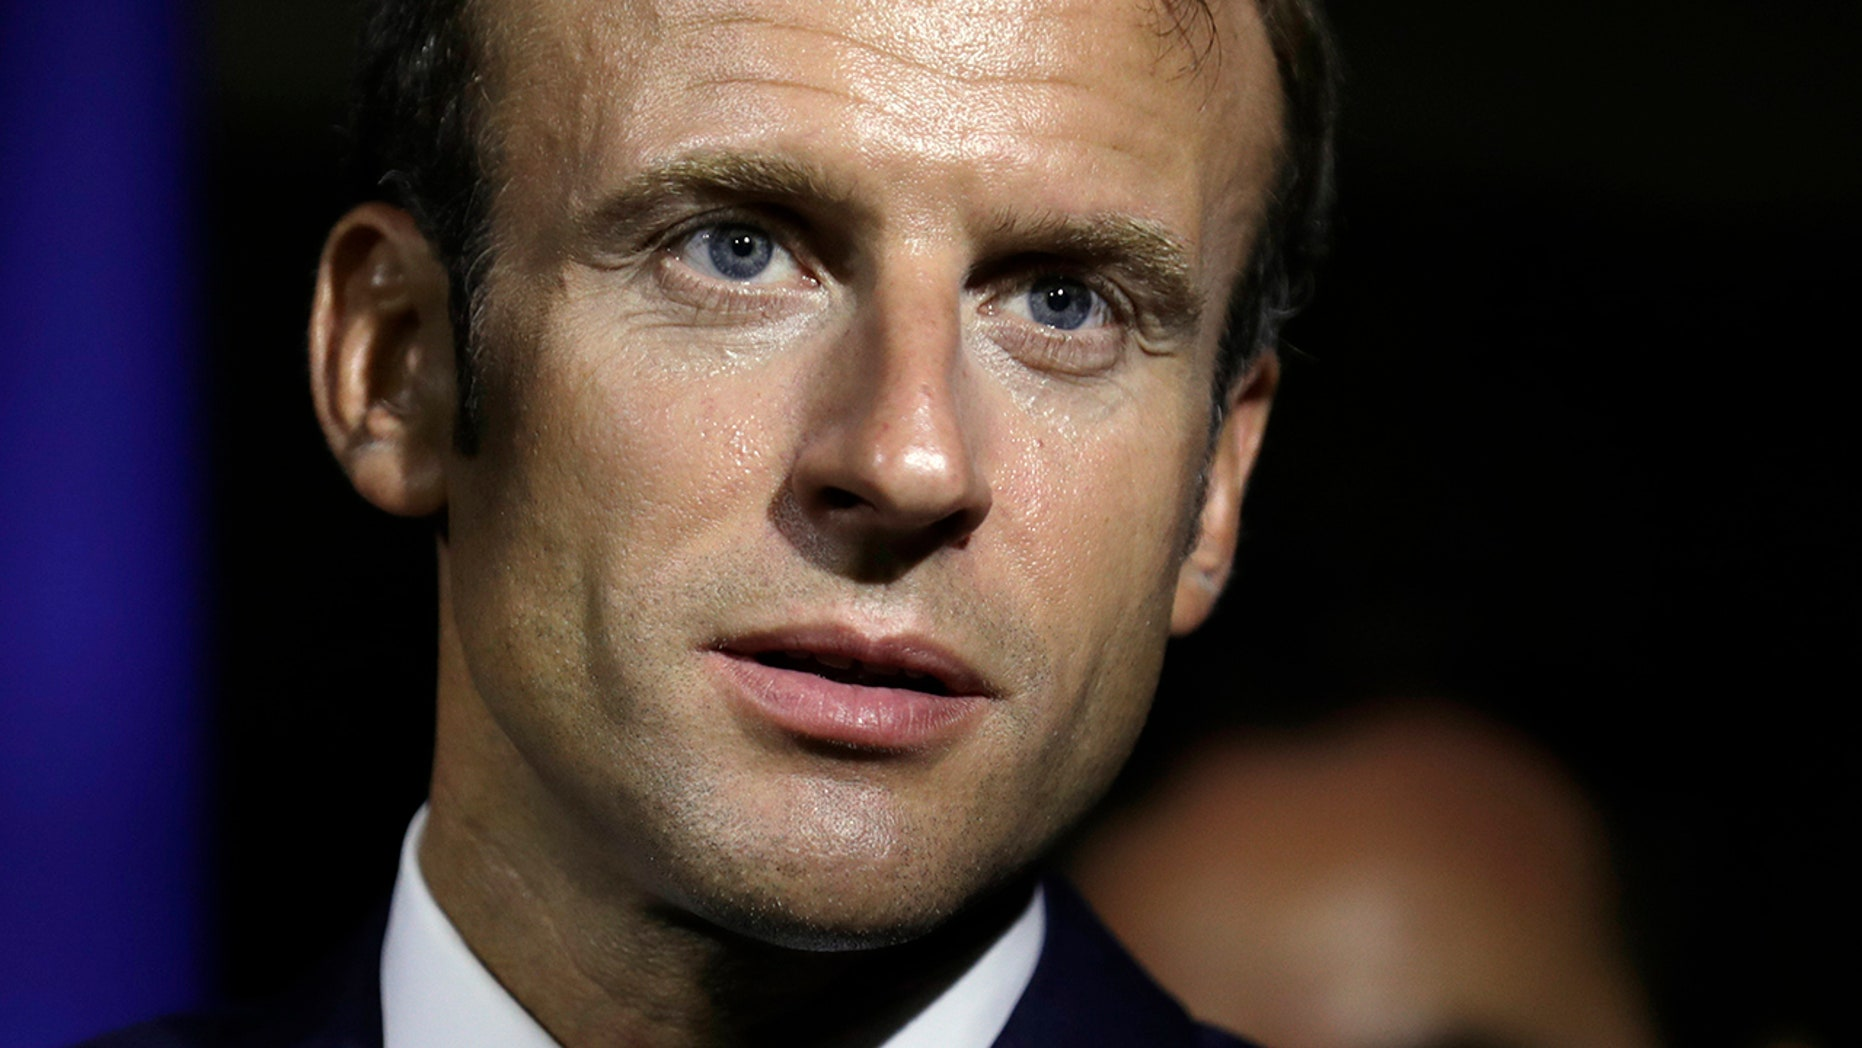 French President Emmanuel Macron speaks during his visit to Goyave on the Guadeloupe island, Friday Sept. 28, 2018, during a trip in the French West Indies.